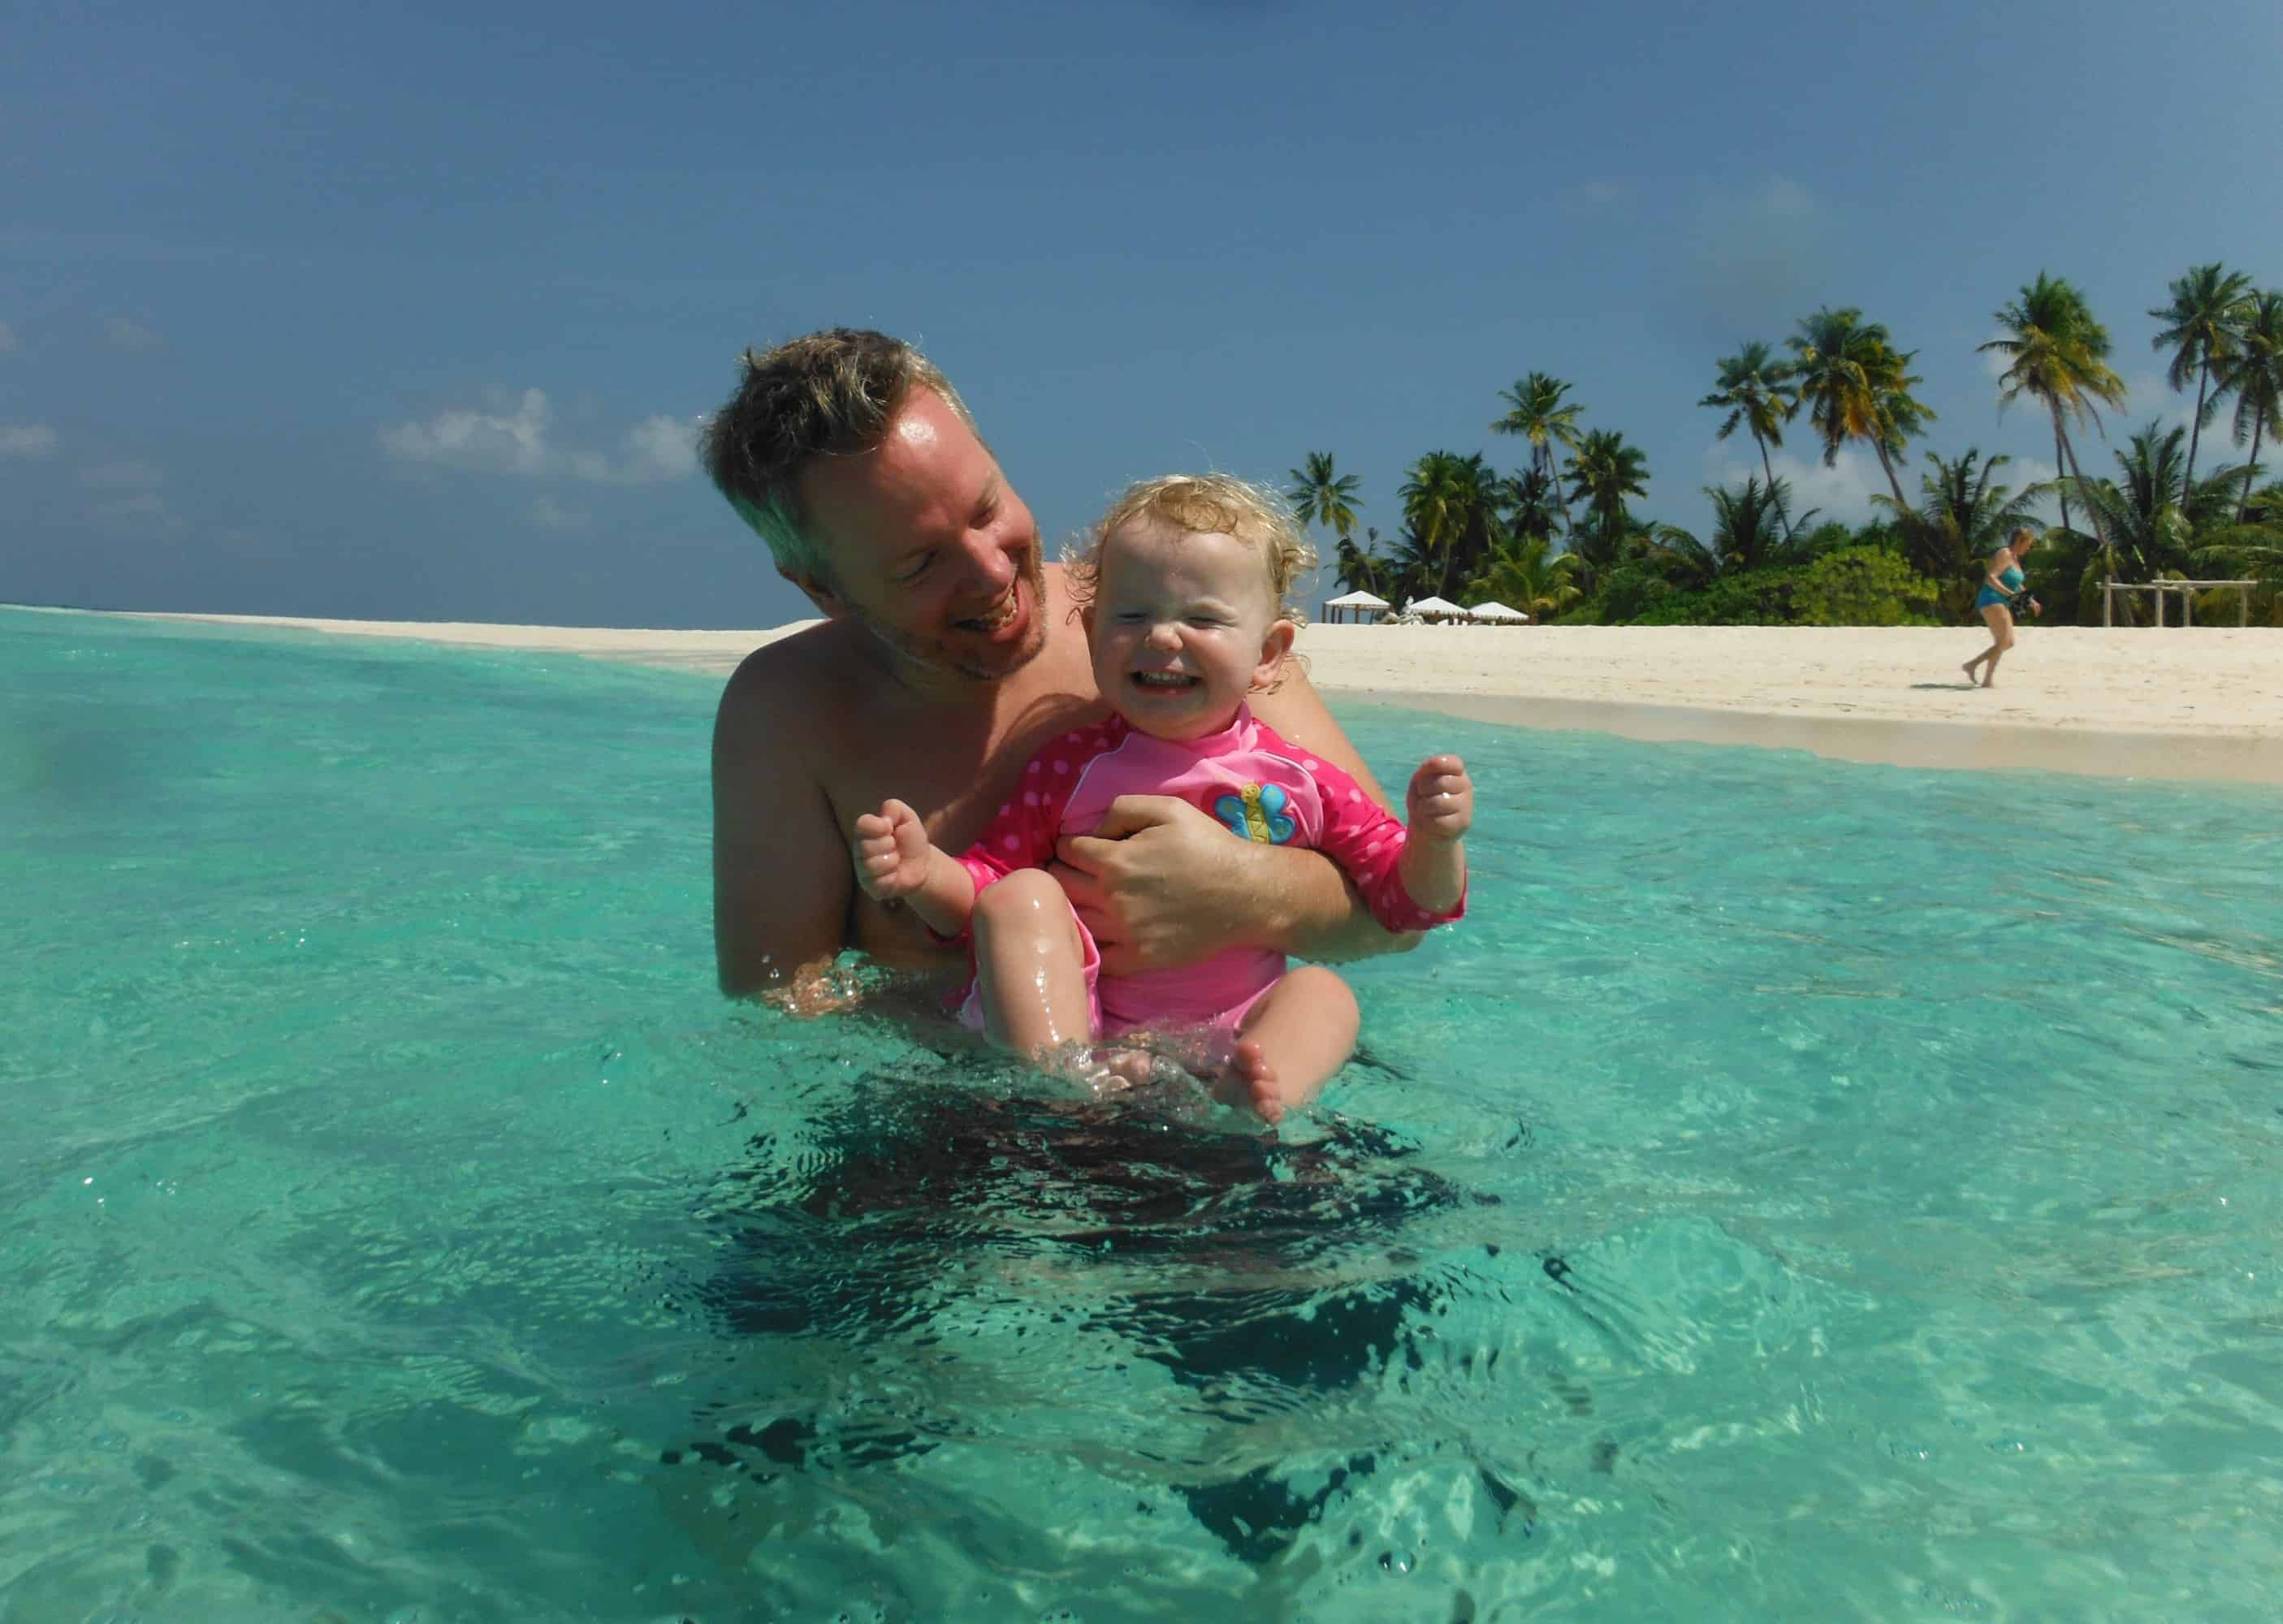 Young child and father in the turquoise sea on a family holiday to the Maldives